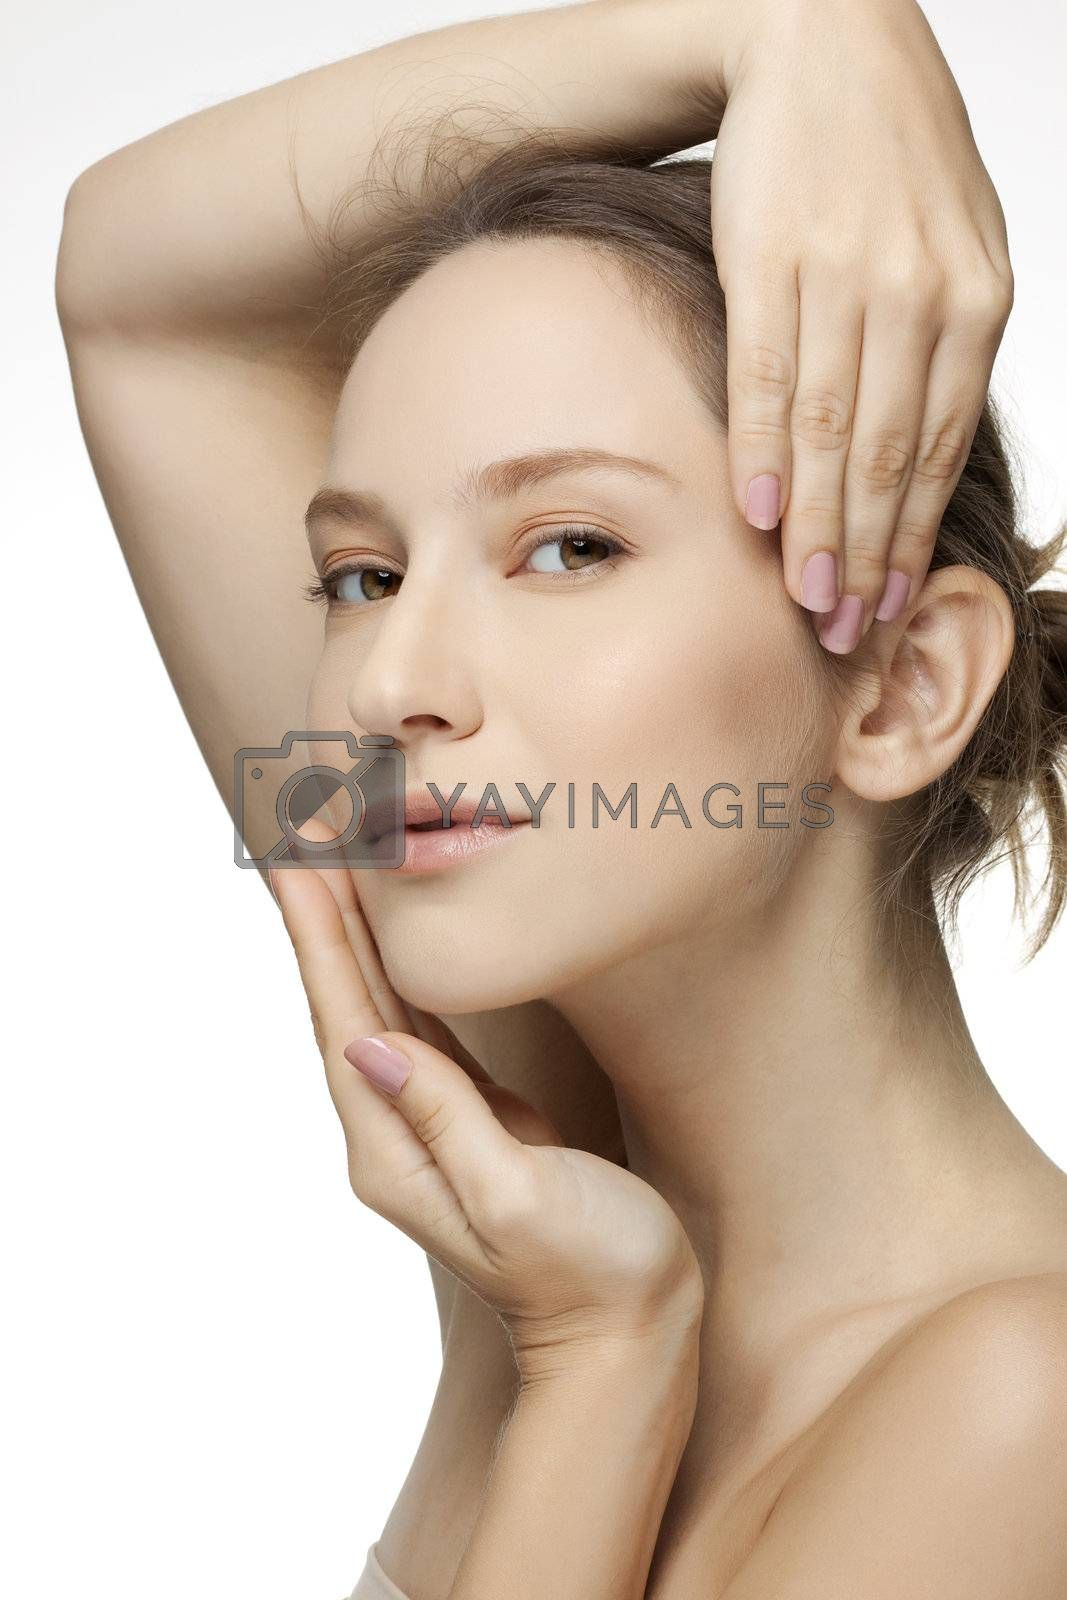 Close-up portrait of a beautiful young woman holding hands by her face